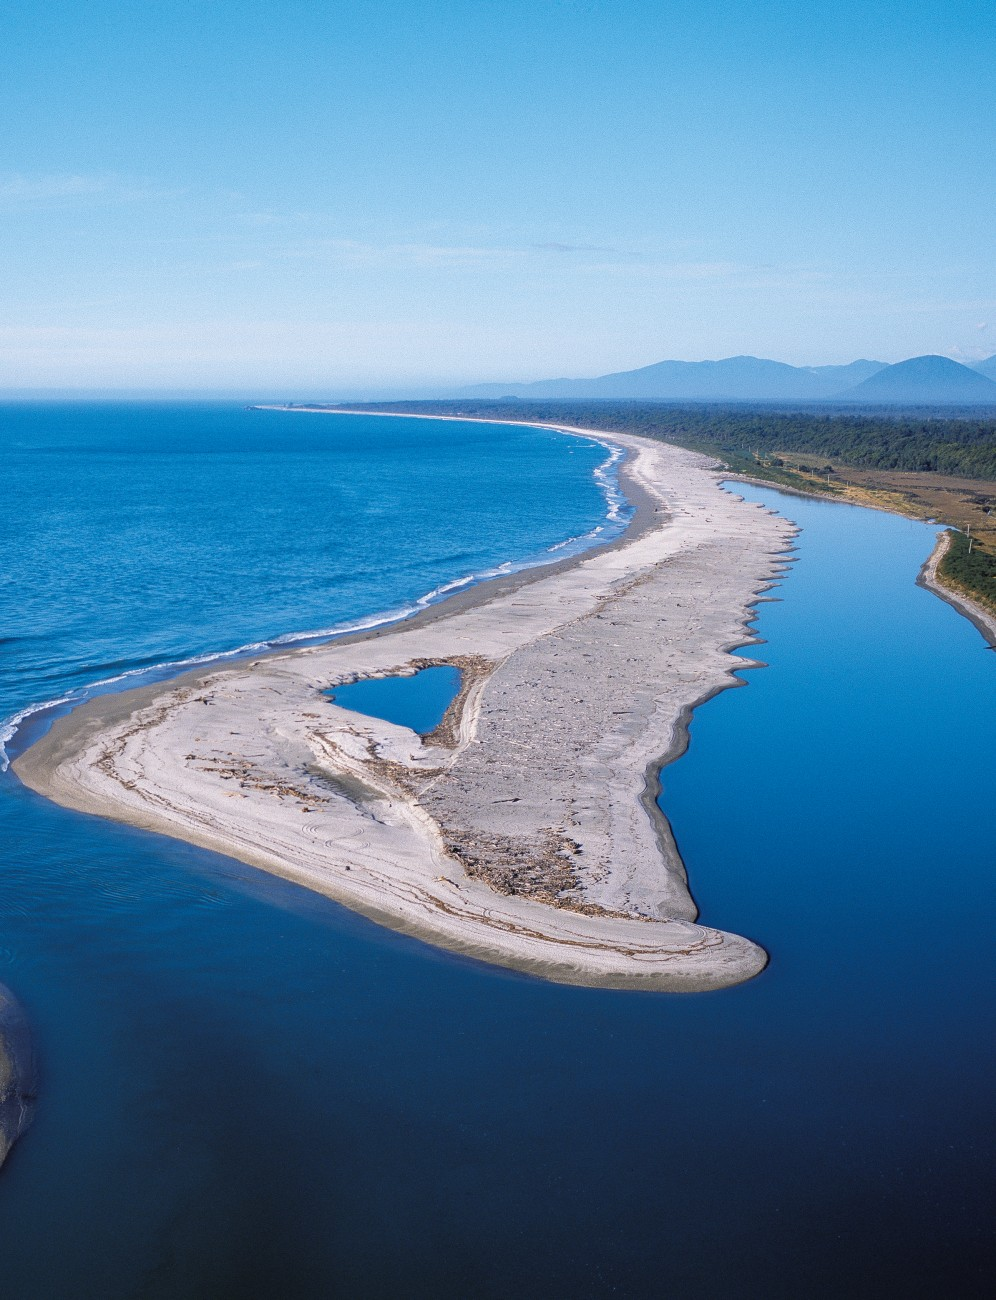 On a calm day the Waiatoto mouth looks benign, but after every large storm, more debris pours into the bay and the configuration of the river entrance may change substantially—just part of the interest in living in a place like Haast.